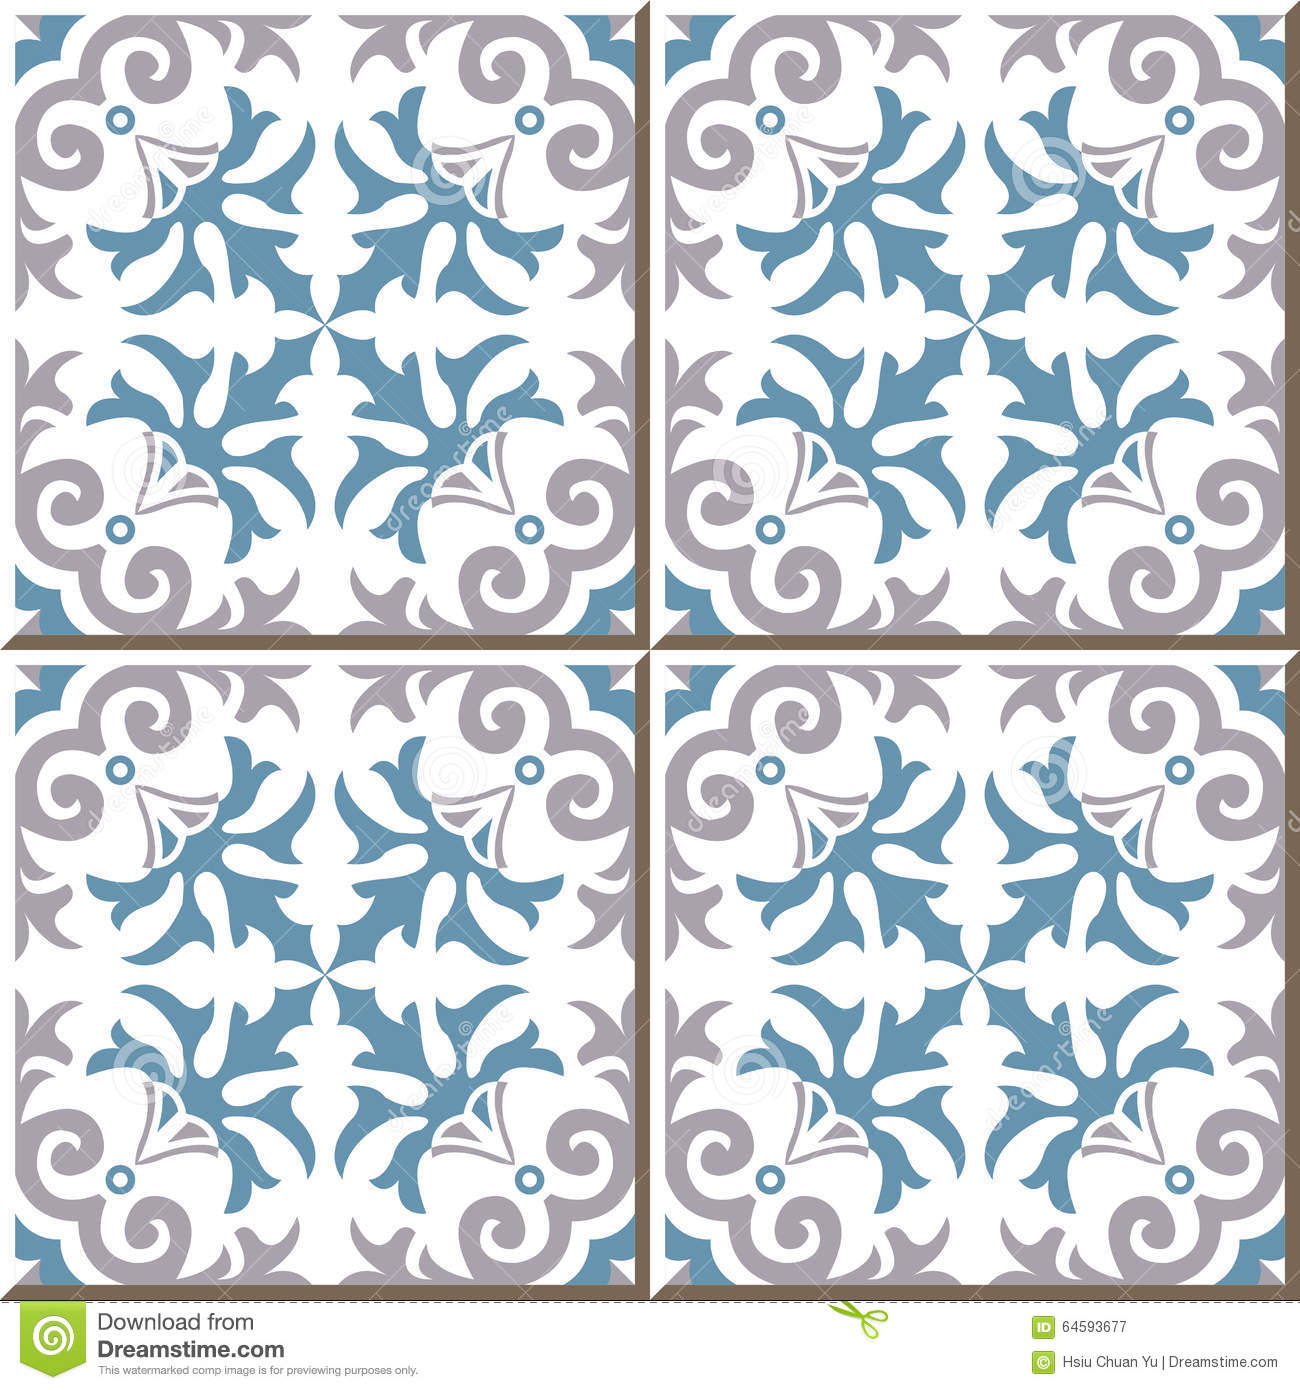 Vintage Seamless Wall Tiles Of Spiral Plant Flower. Moroccan ...